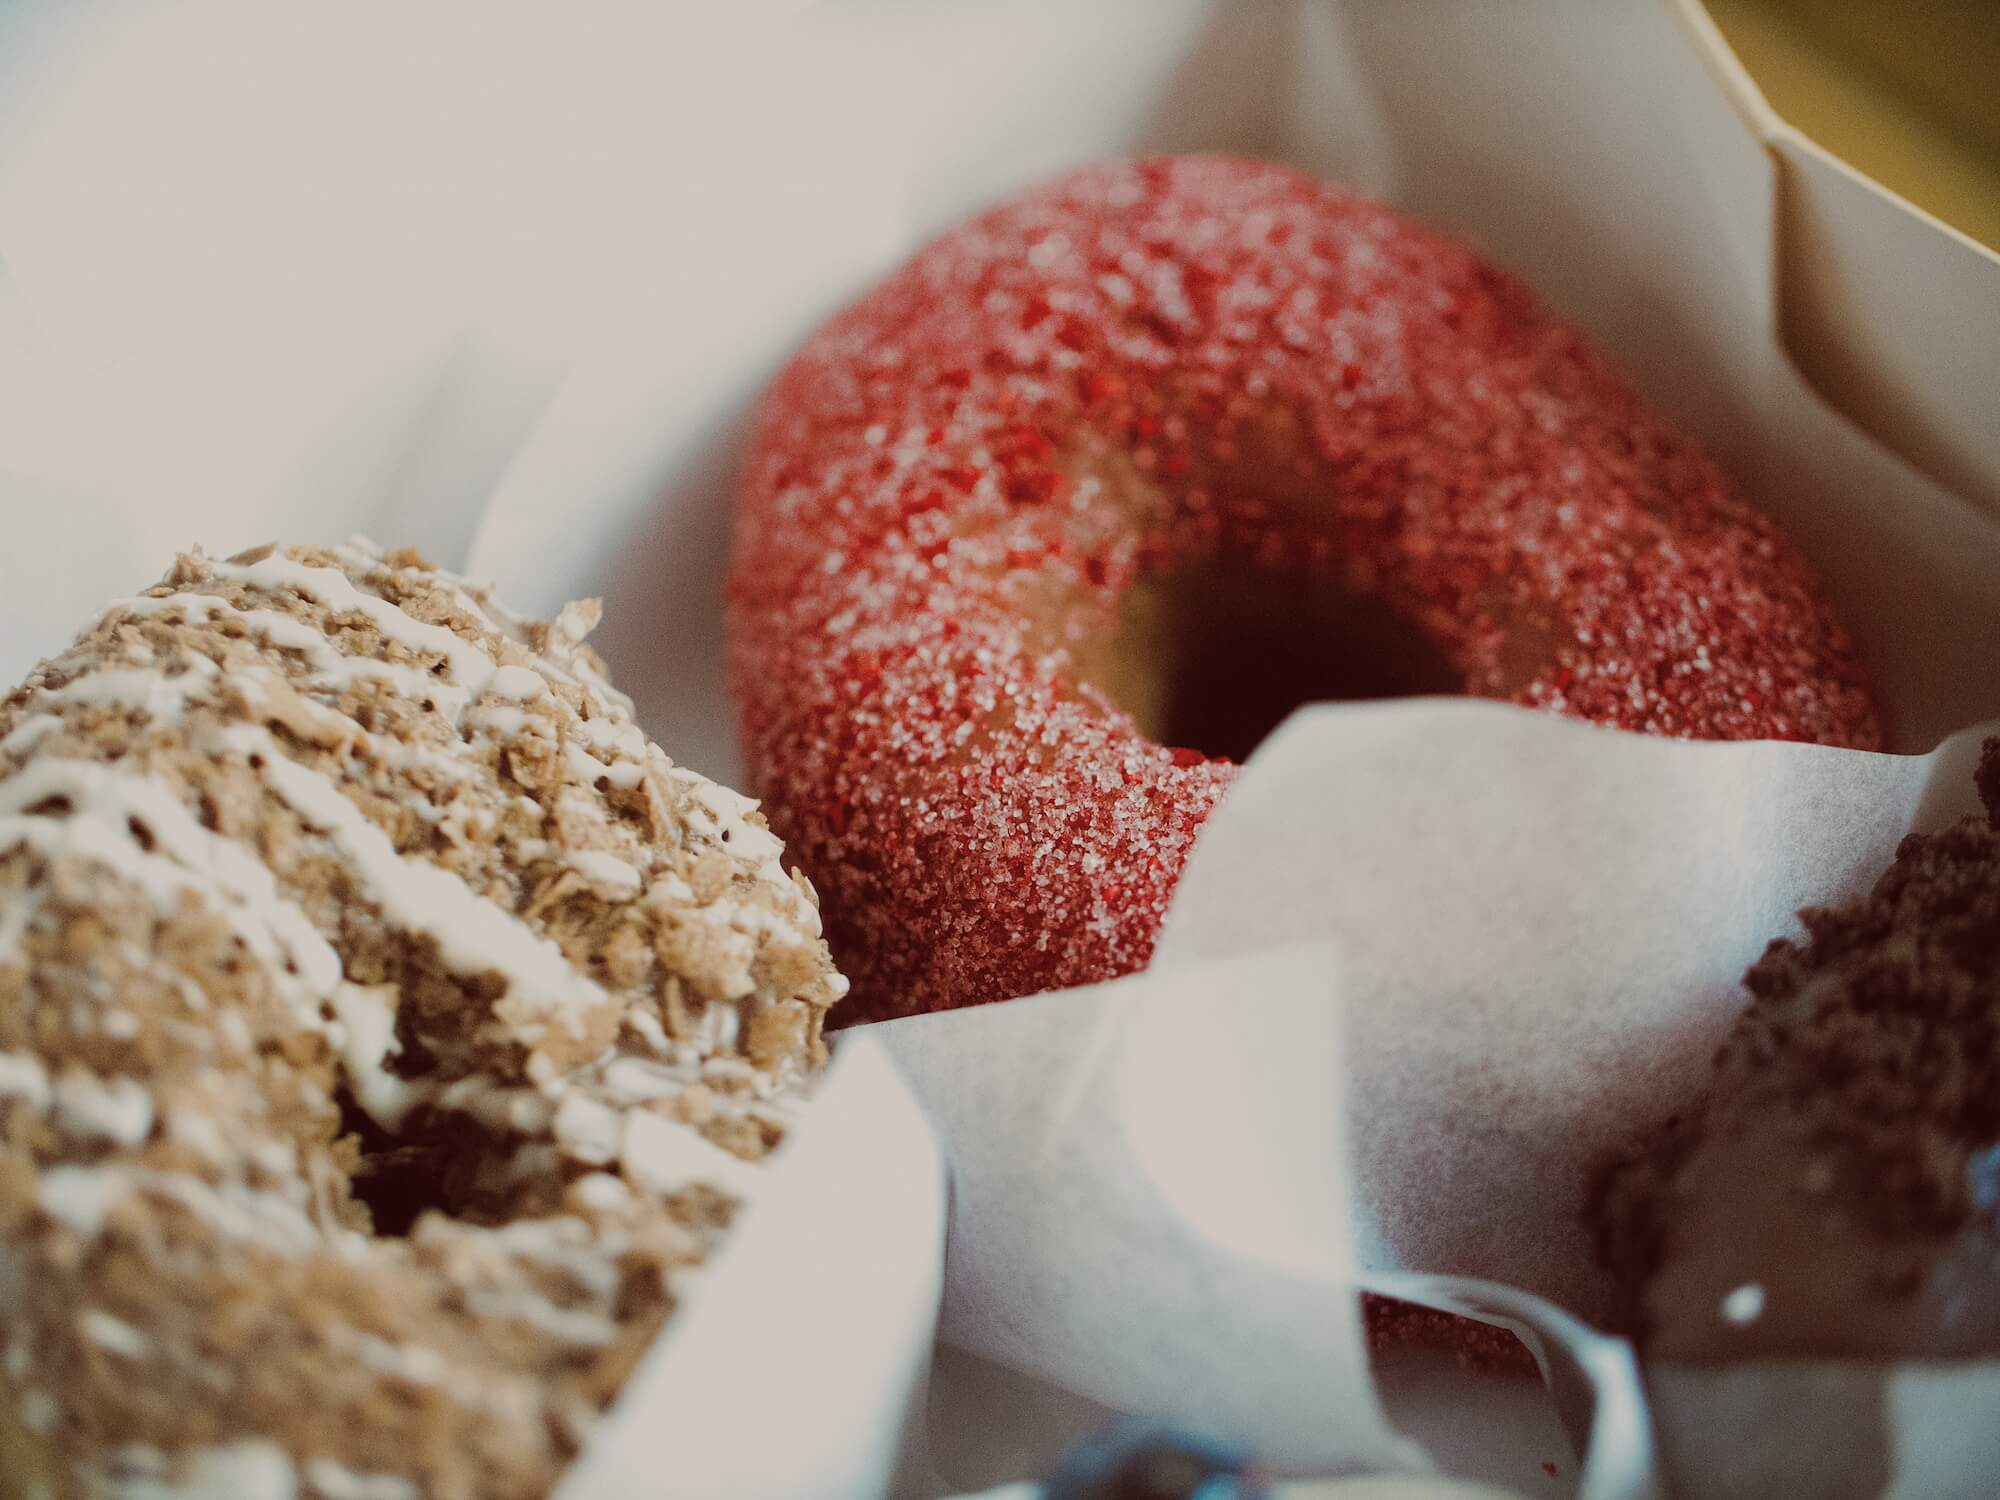 Quick Fixes for The 5 Most Common Dieting Mistakes at The Office